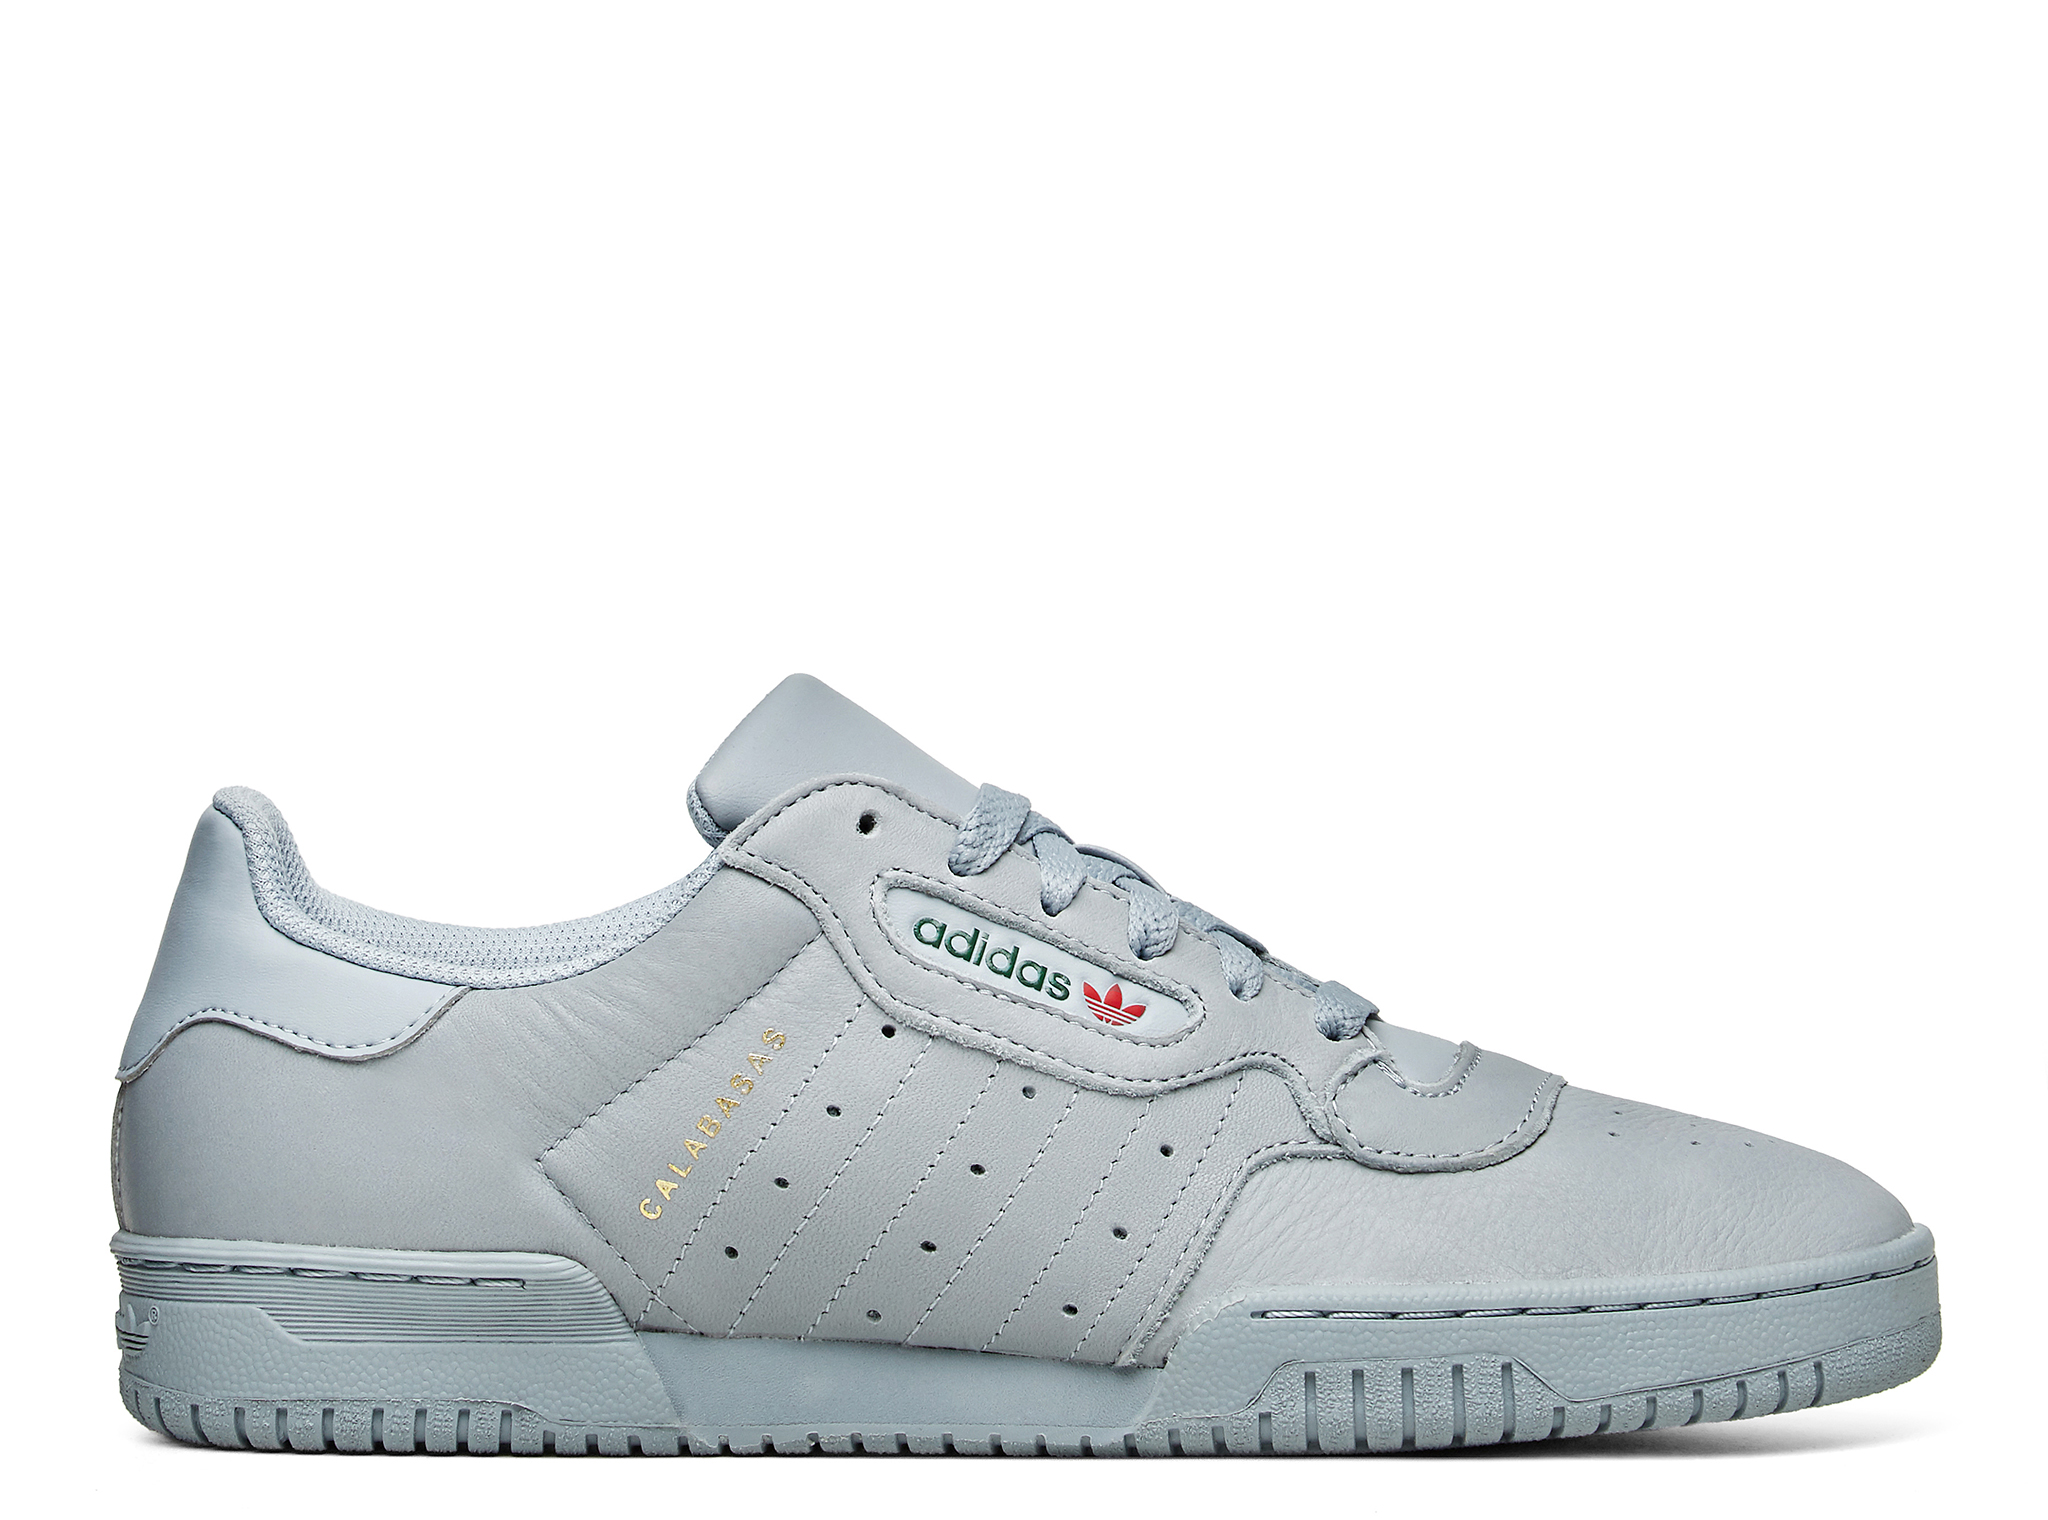 adidas original yeezy powerphase